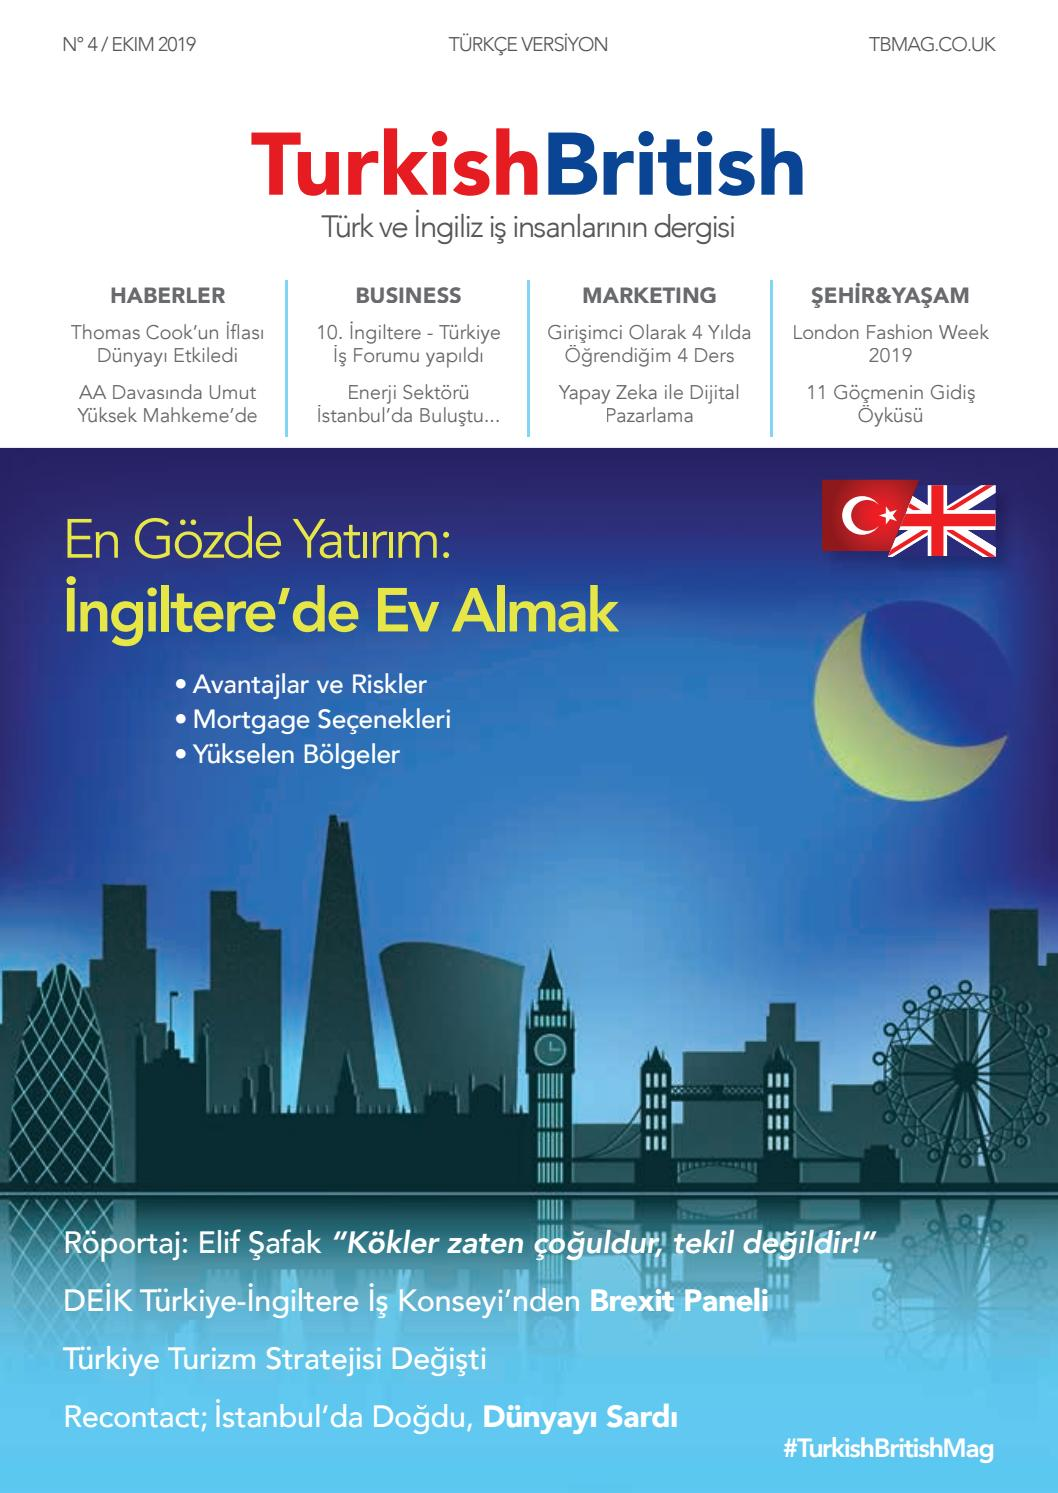 Turkish British Magazin 4 Sayi Ekim 2019 Turkce Versiyon By Afs